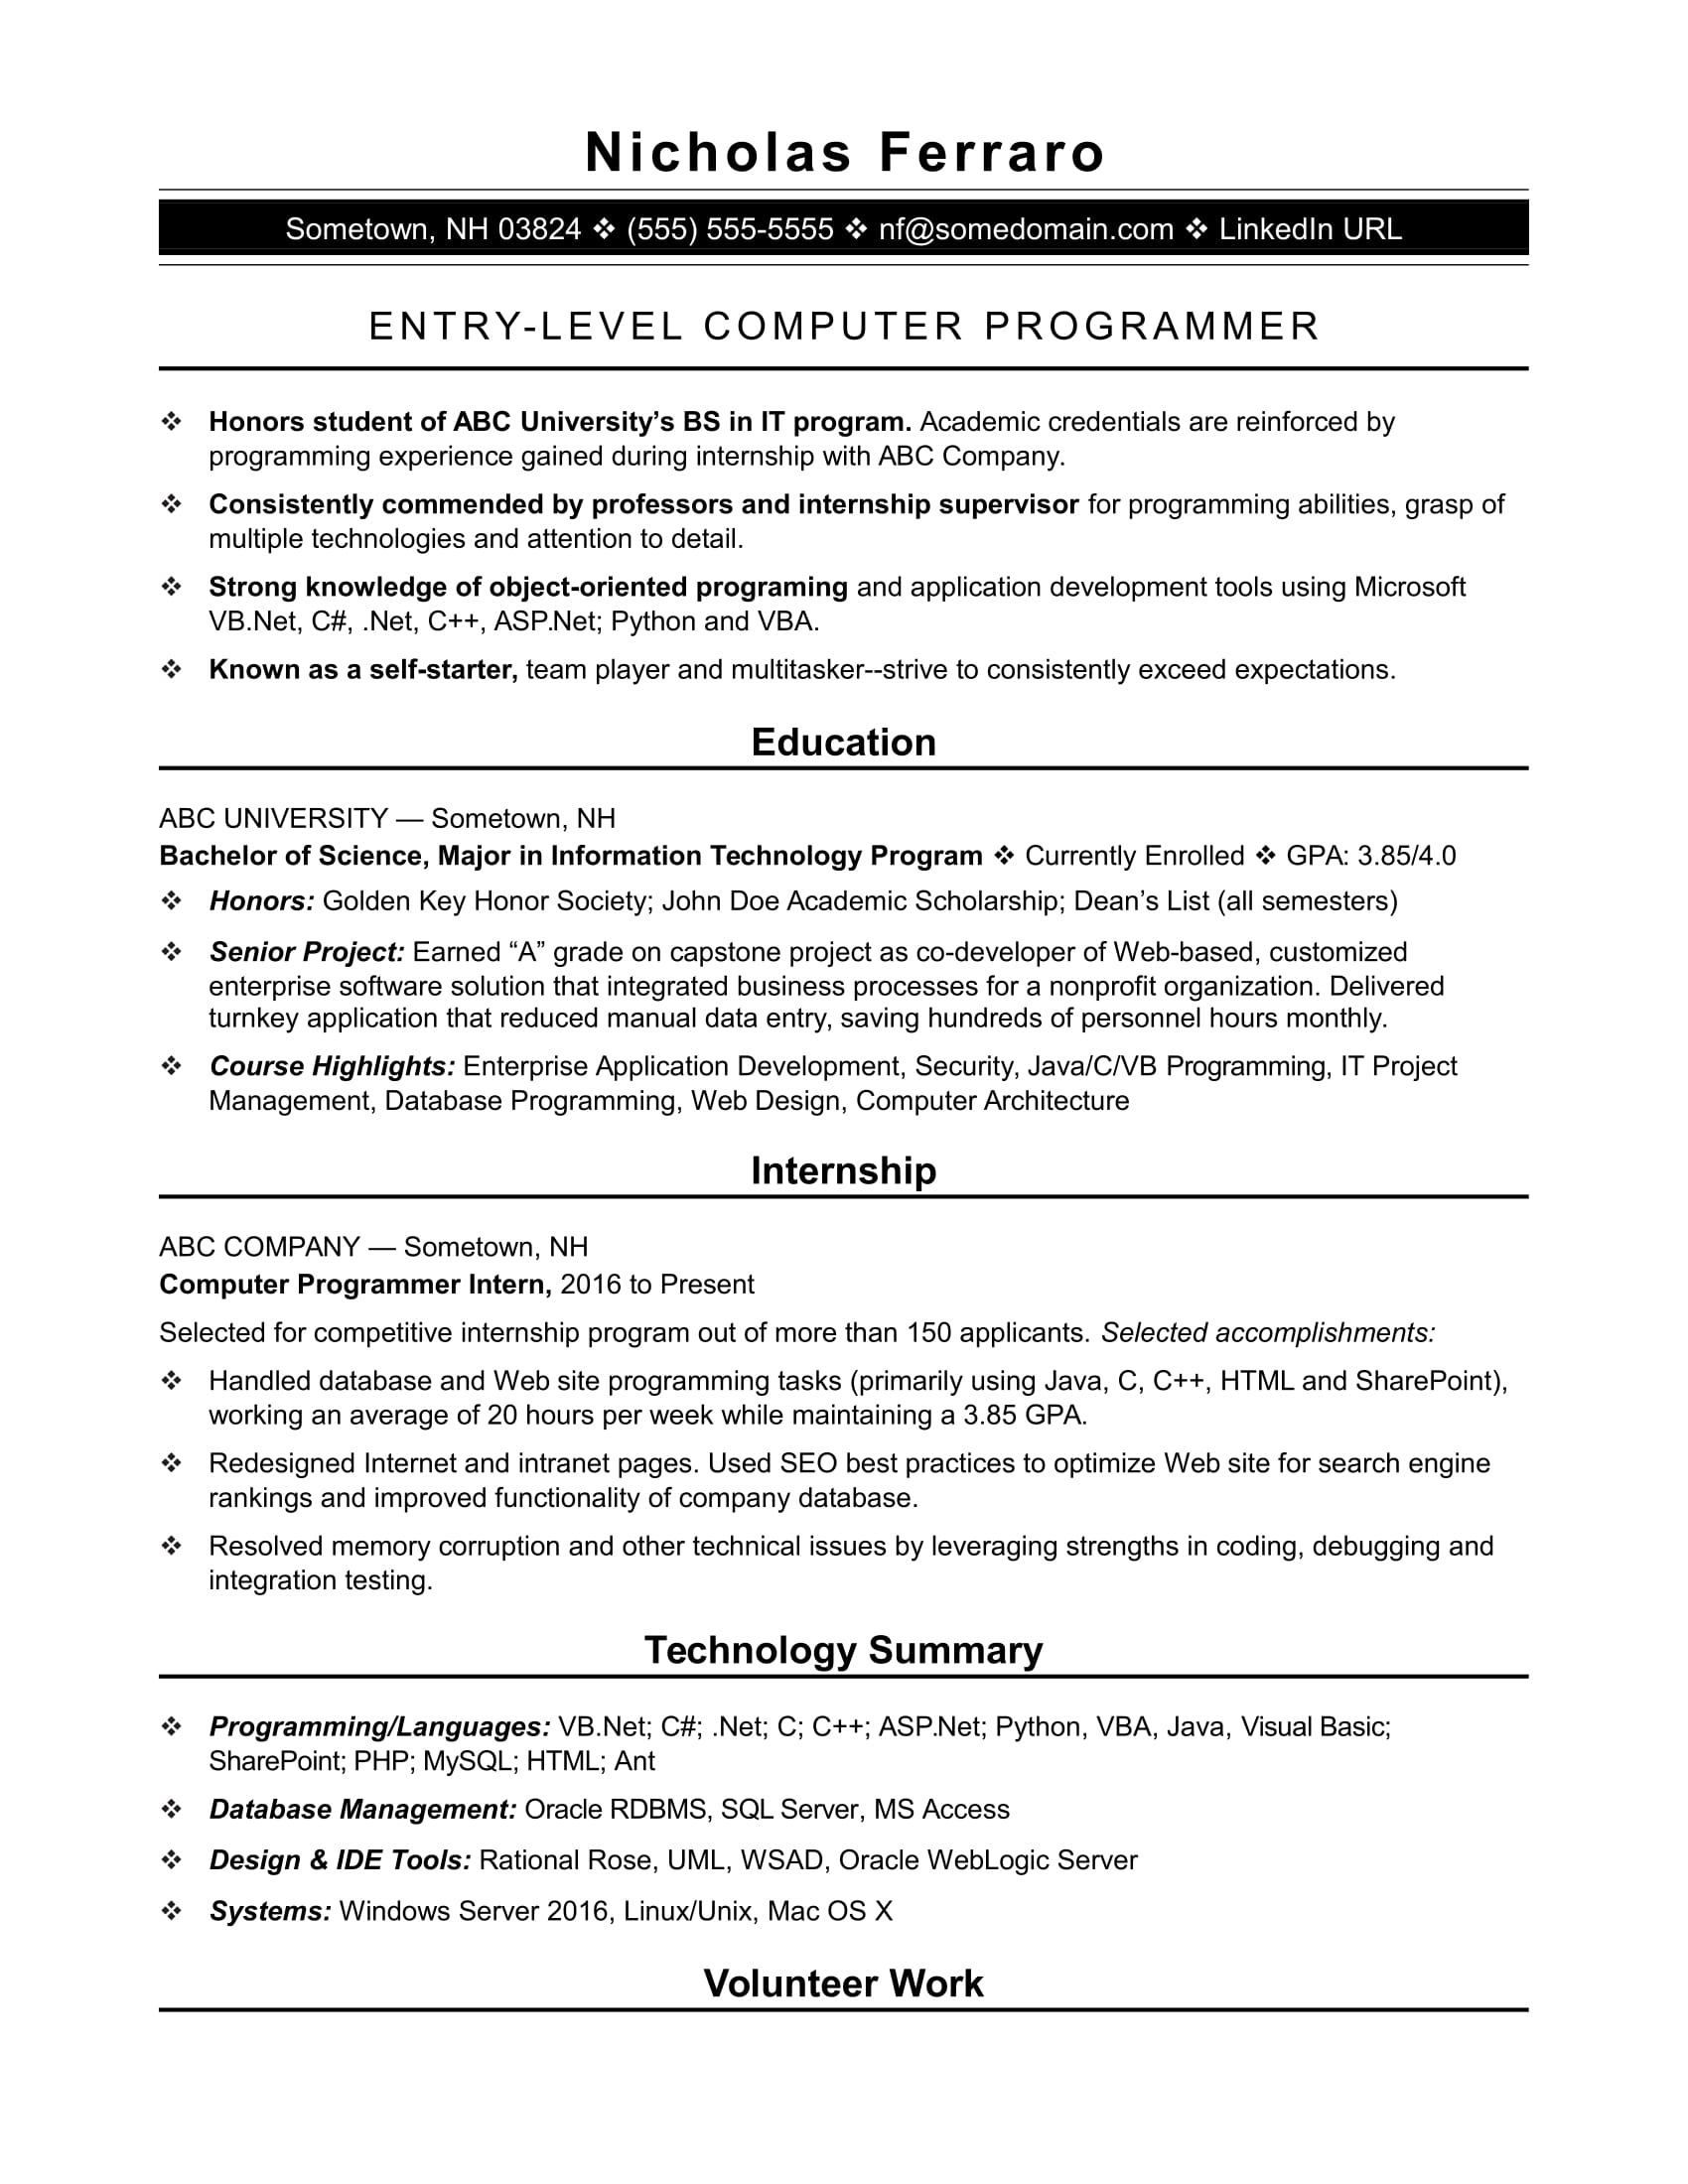 Superior Sample Resume For An Entry Level Computer Programmer On Programming Skills Resume